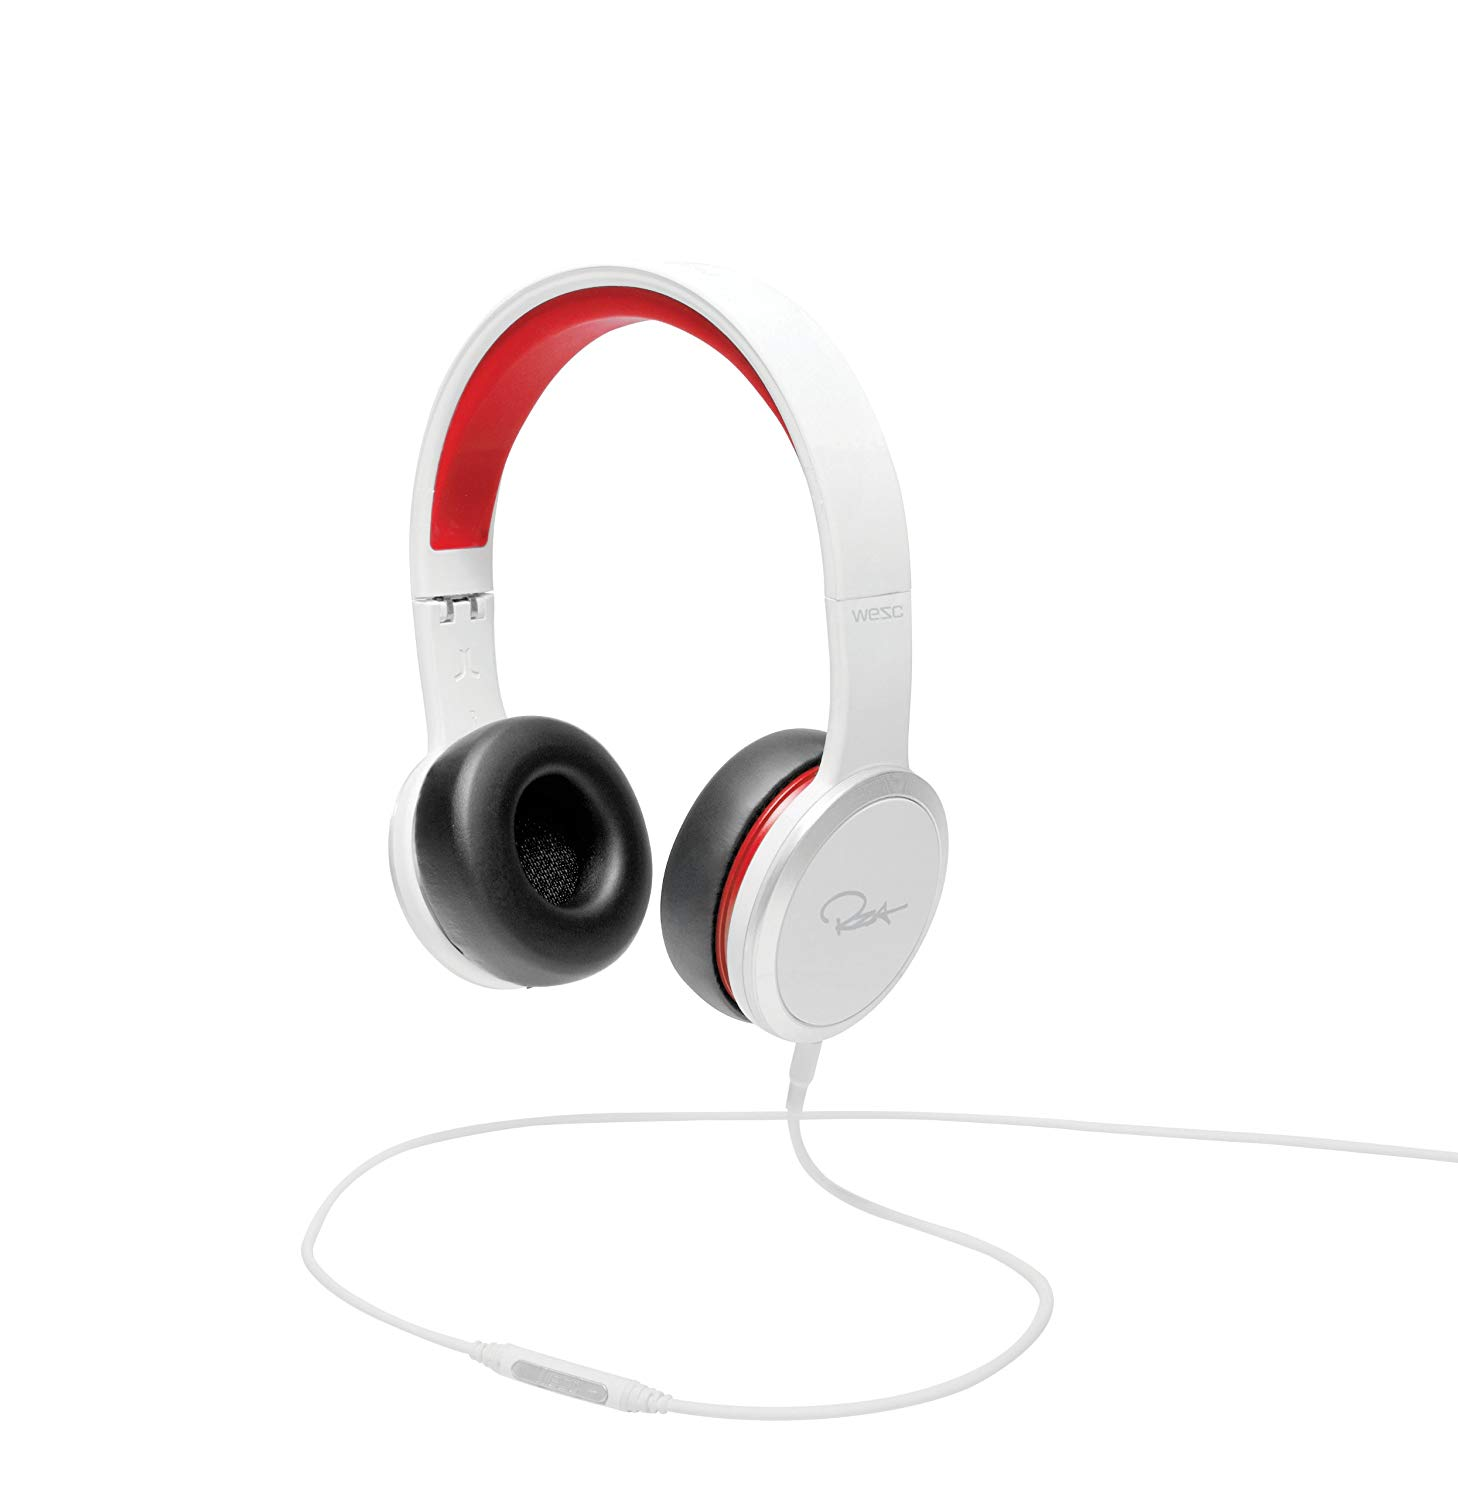 WeSC RZA Street Headphones (White/Red)